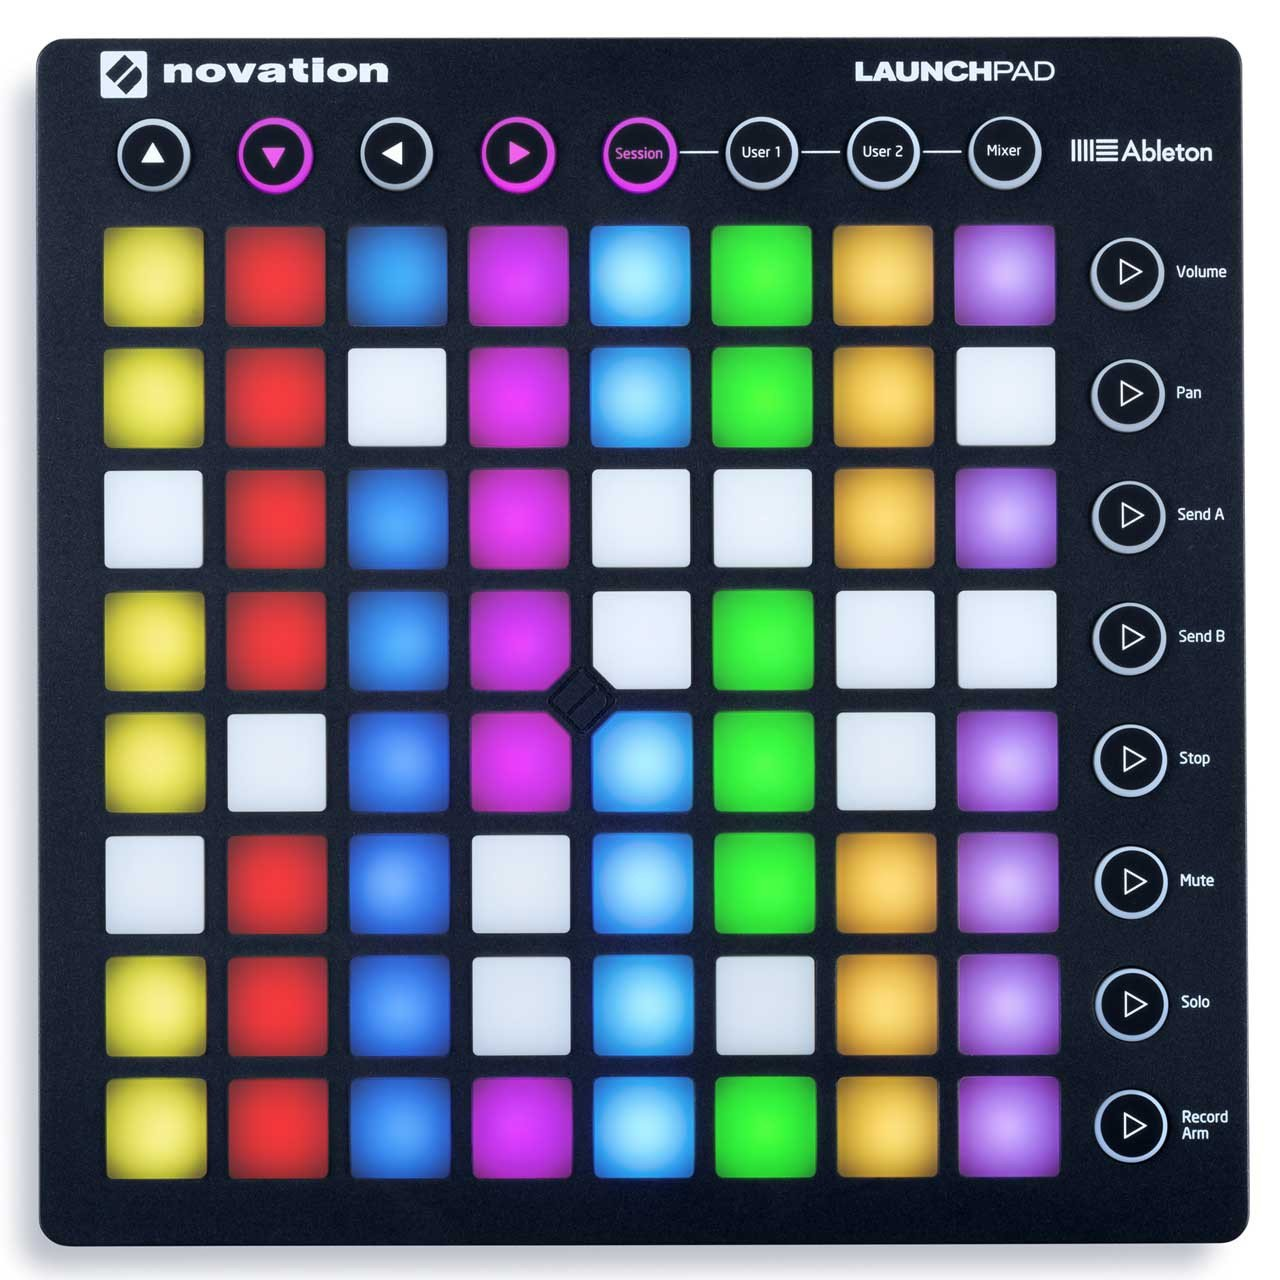 Novation Launchpad MK2 - Ableton MIDI Controller